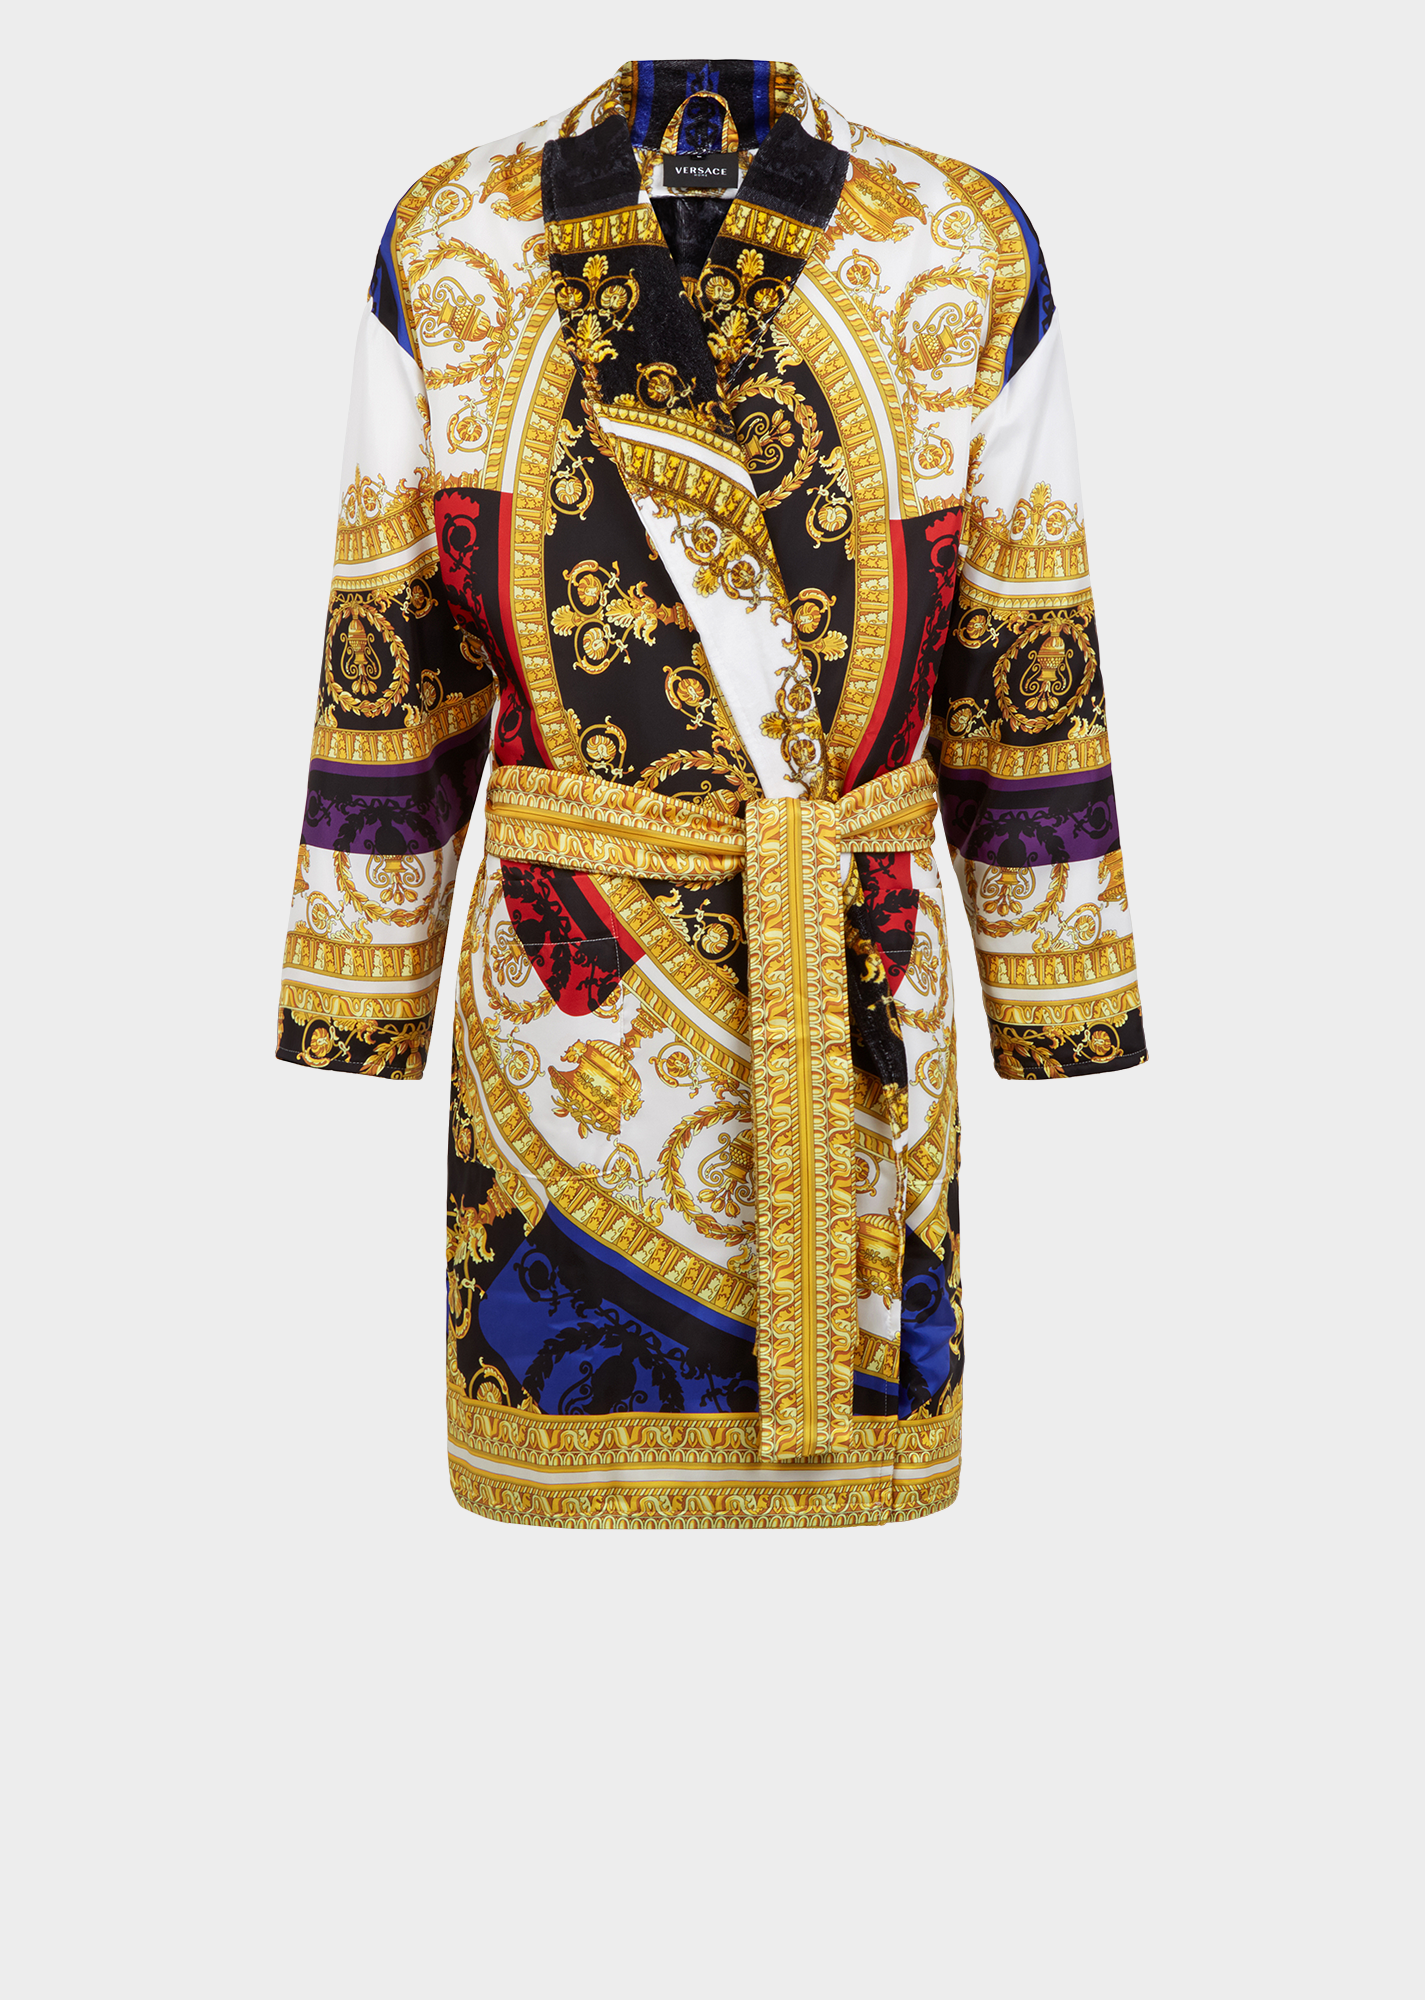 75f0813a Silk I ♡ Baroque Bathrobe - Gold Bathrobes Versace Robe Mens, Versace  Dress, Versace